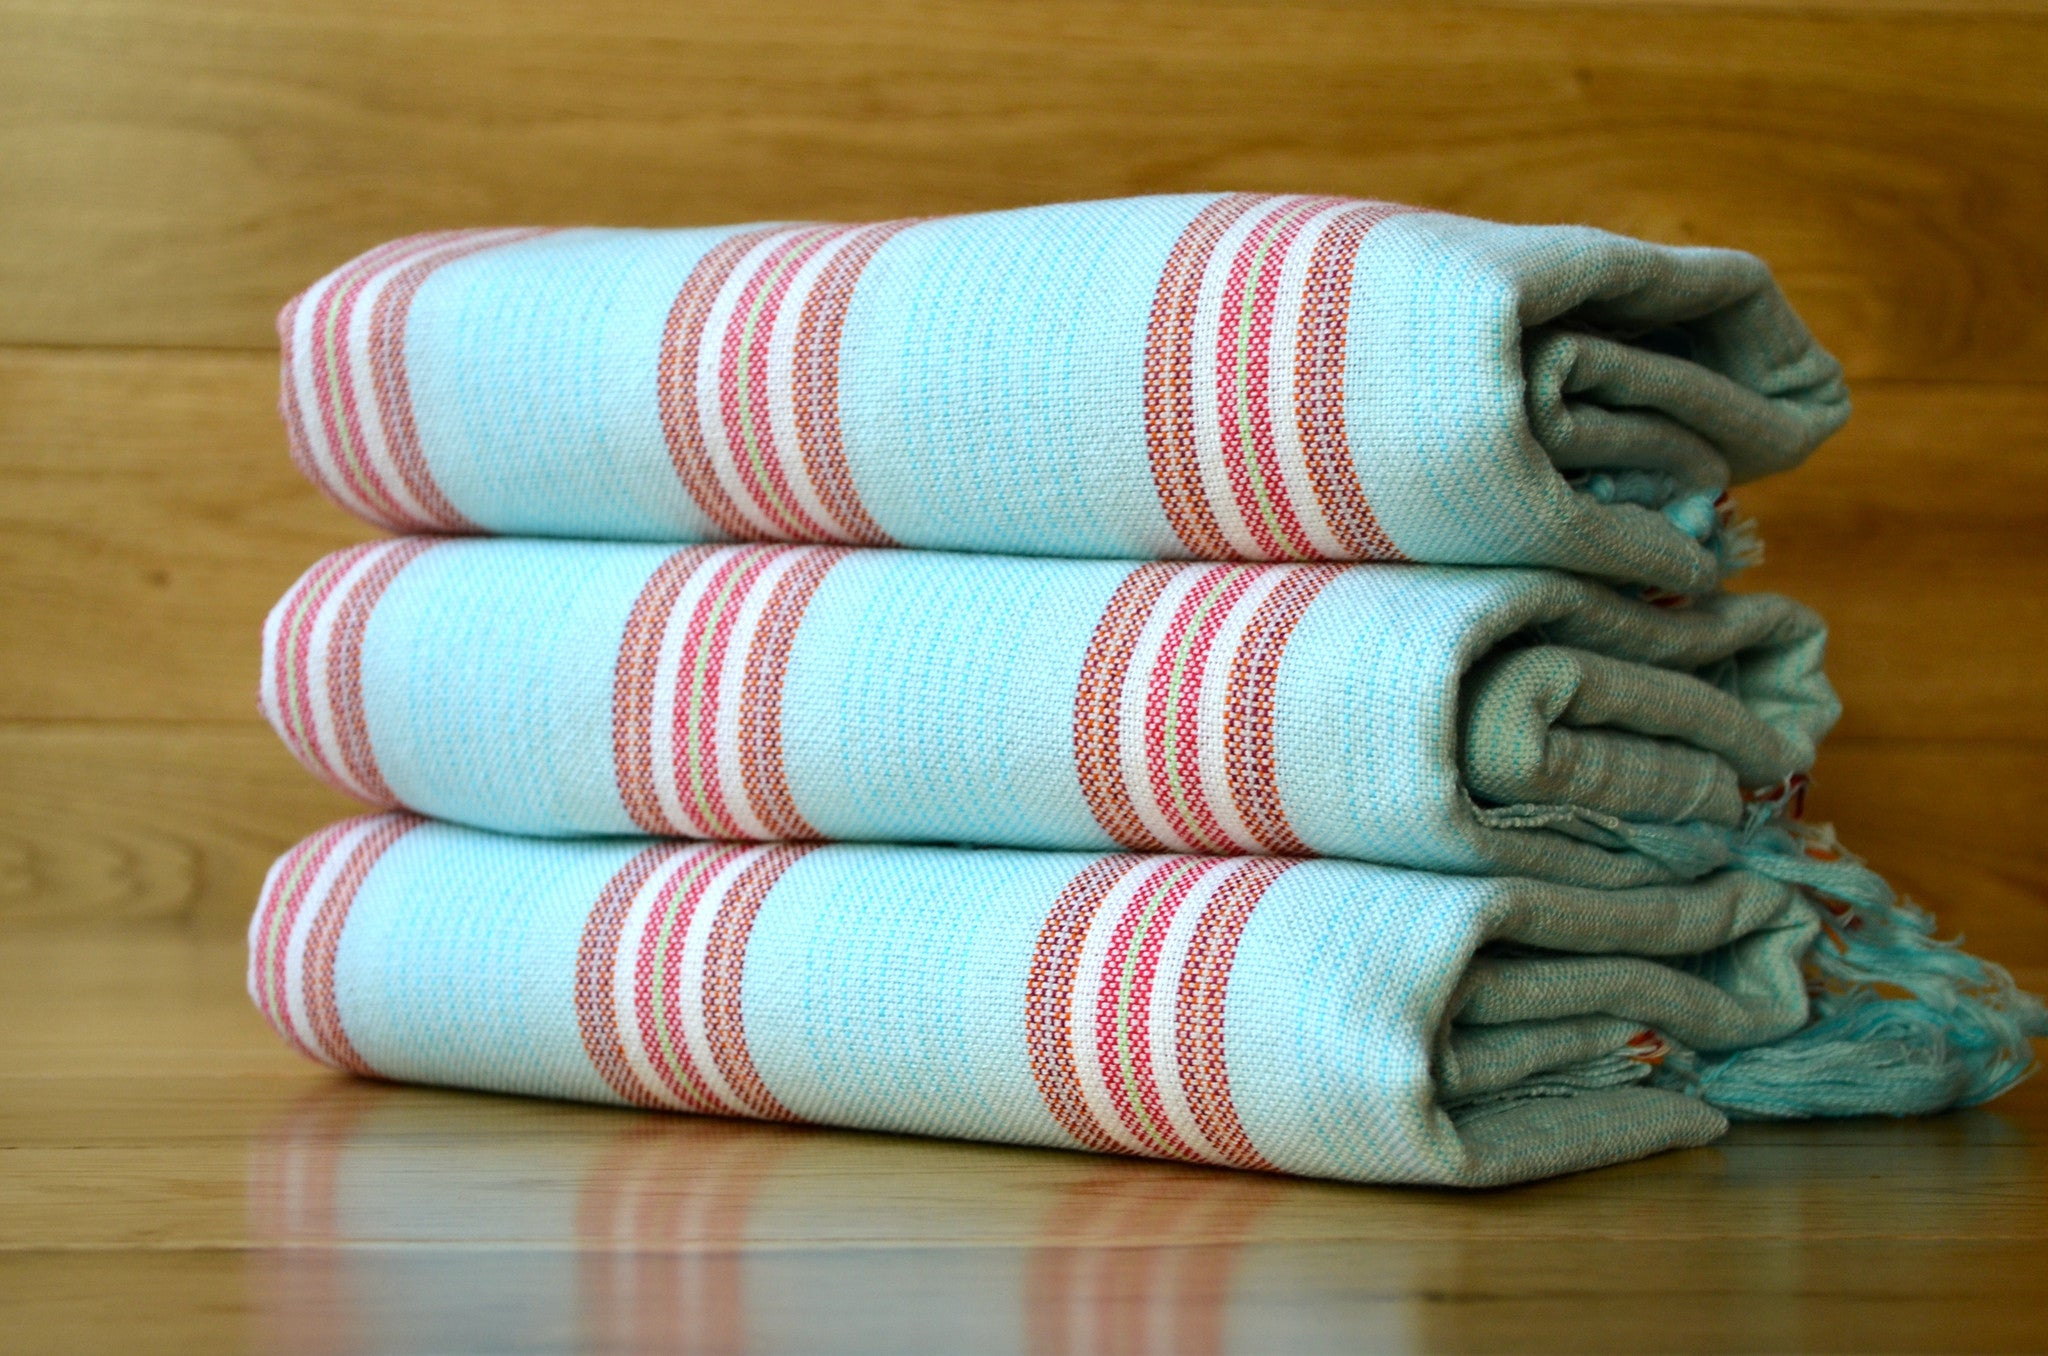 Kula Cotton Towel - Authentic Turkish Towel - Eco-friendly Hammam Towel - Perfect Travel Towel - Pestemal - Peshtemal - Lightweight Towel with Fringe